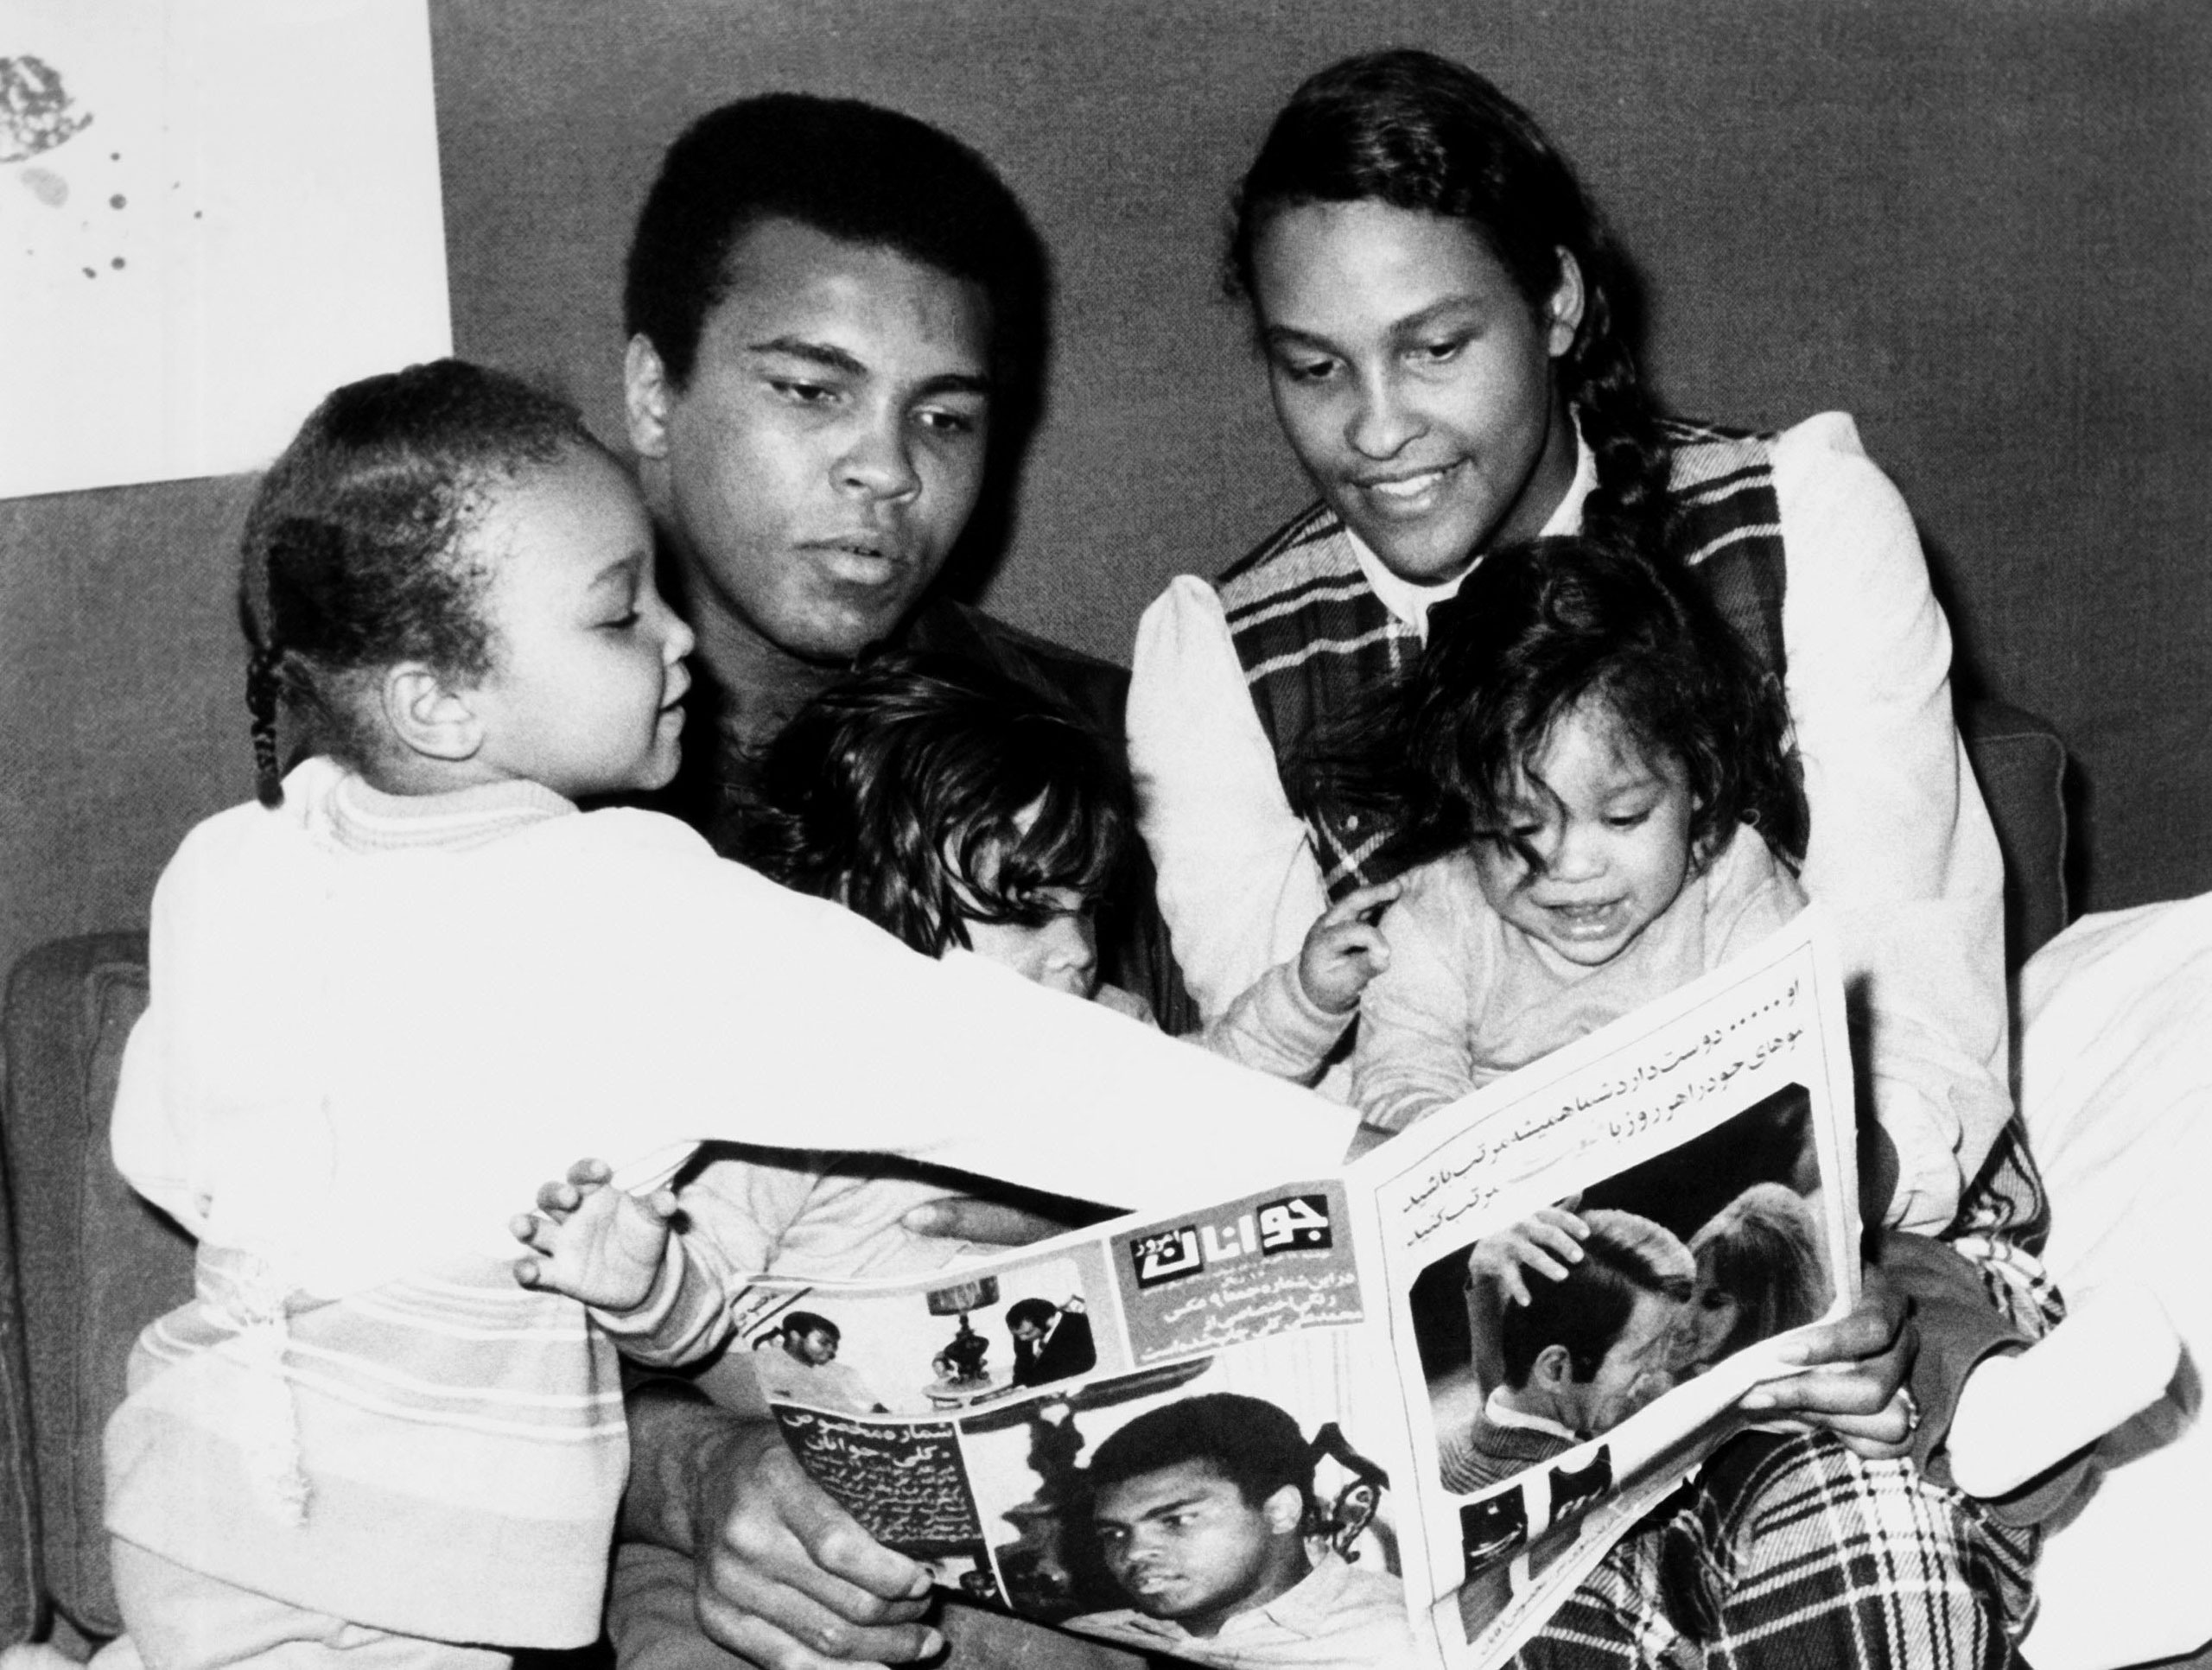 Muhammad Ali with his second wife, Belinda Boyd, and their children, daughter Maryum and twins Jamillah and Rasheda, in 1971.